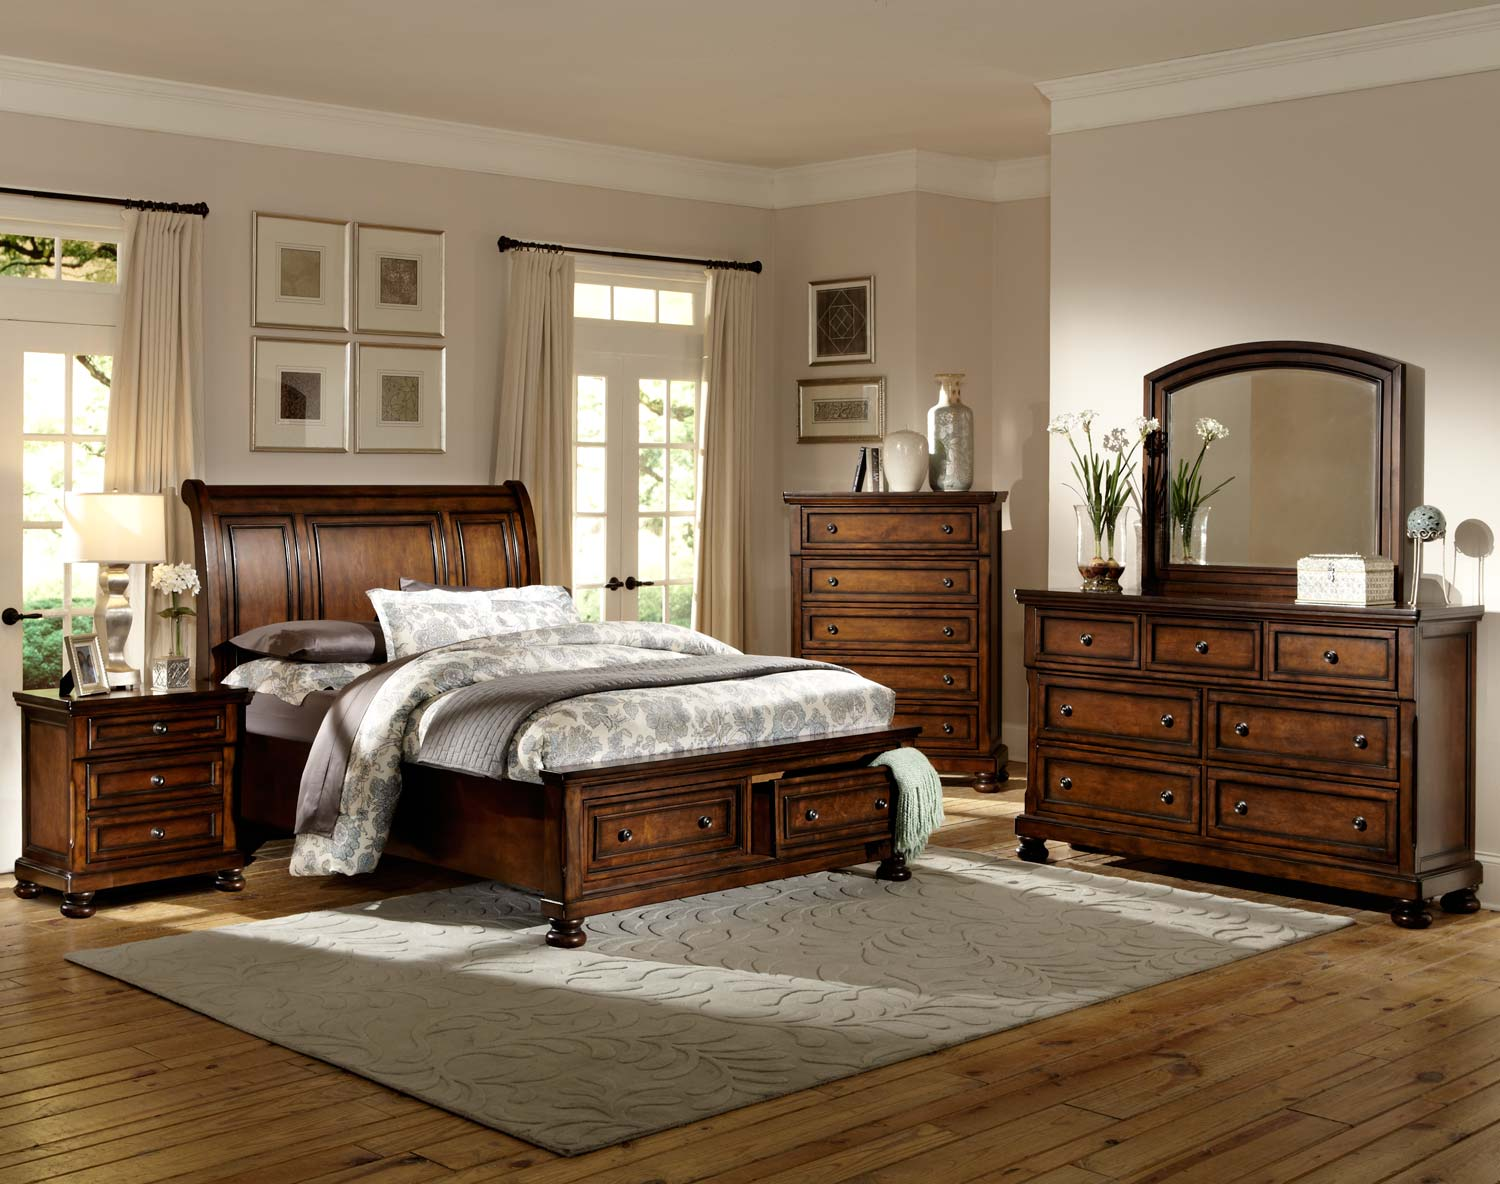 Ashley Furniture Bedroom Suites Homelegance Cumberland Platform Bedroom Set Brown Cherry